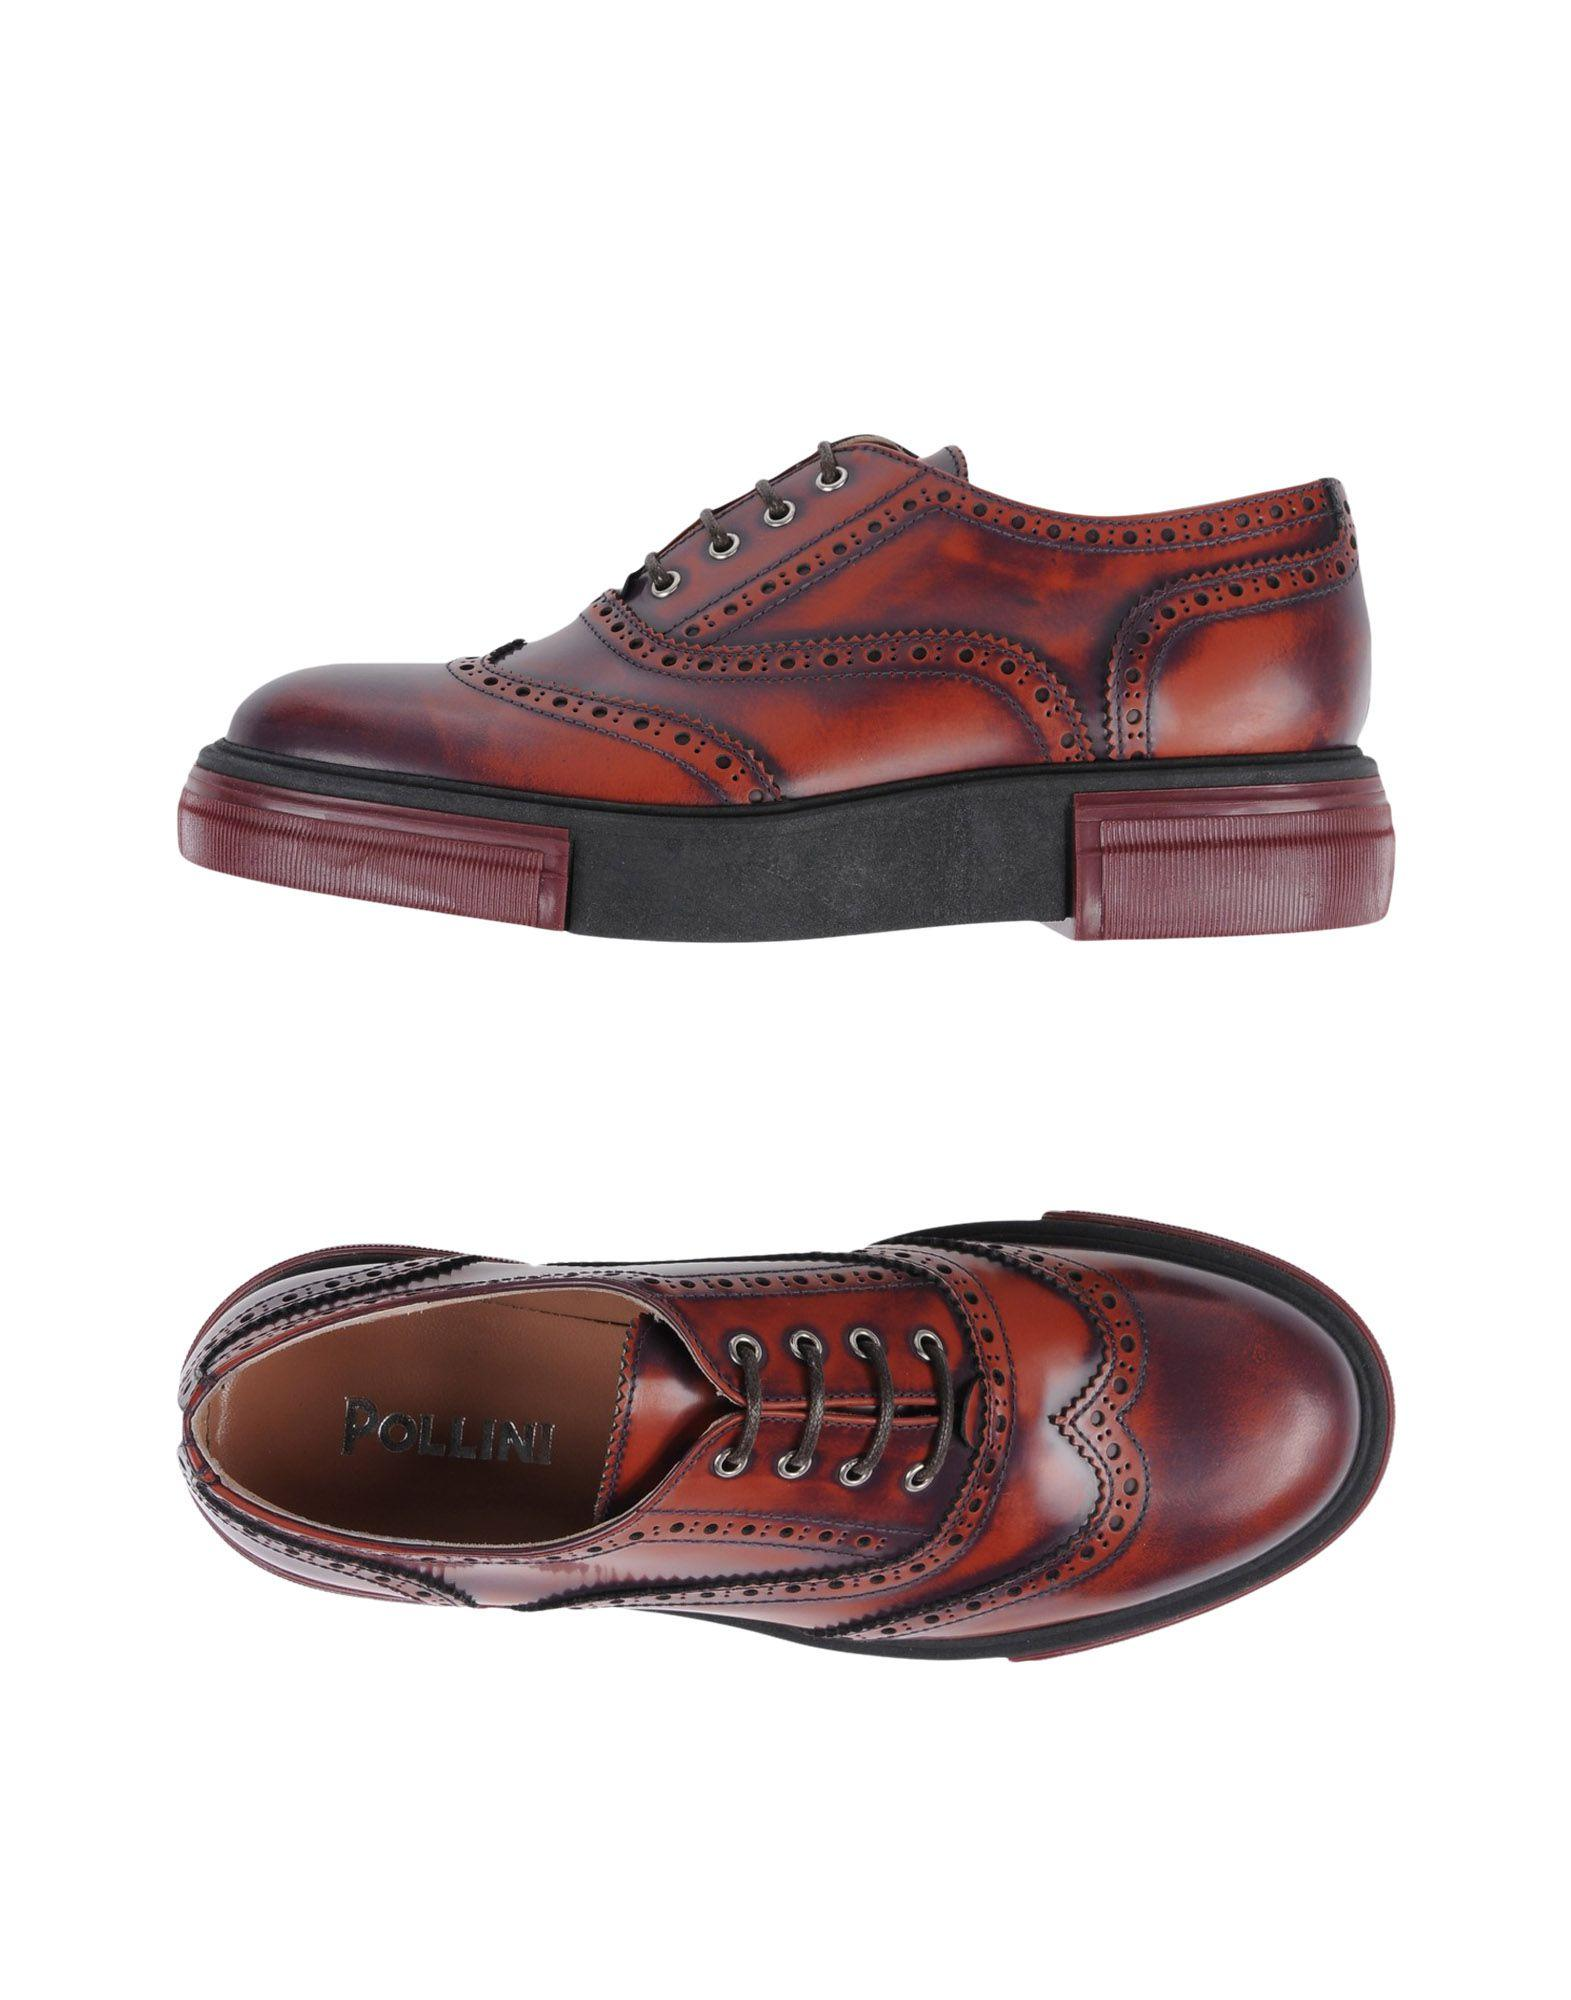 Pollini Lace-up Shoes In Rust